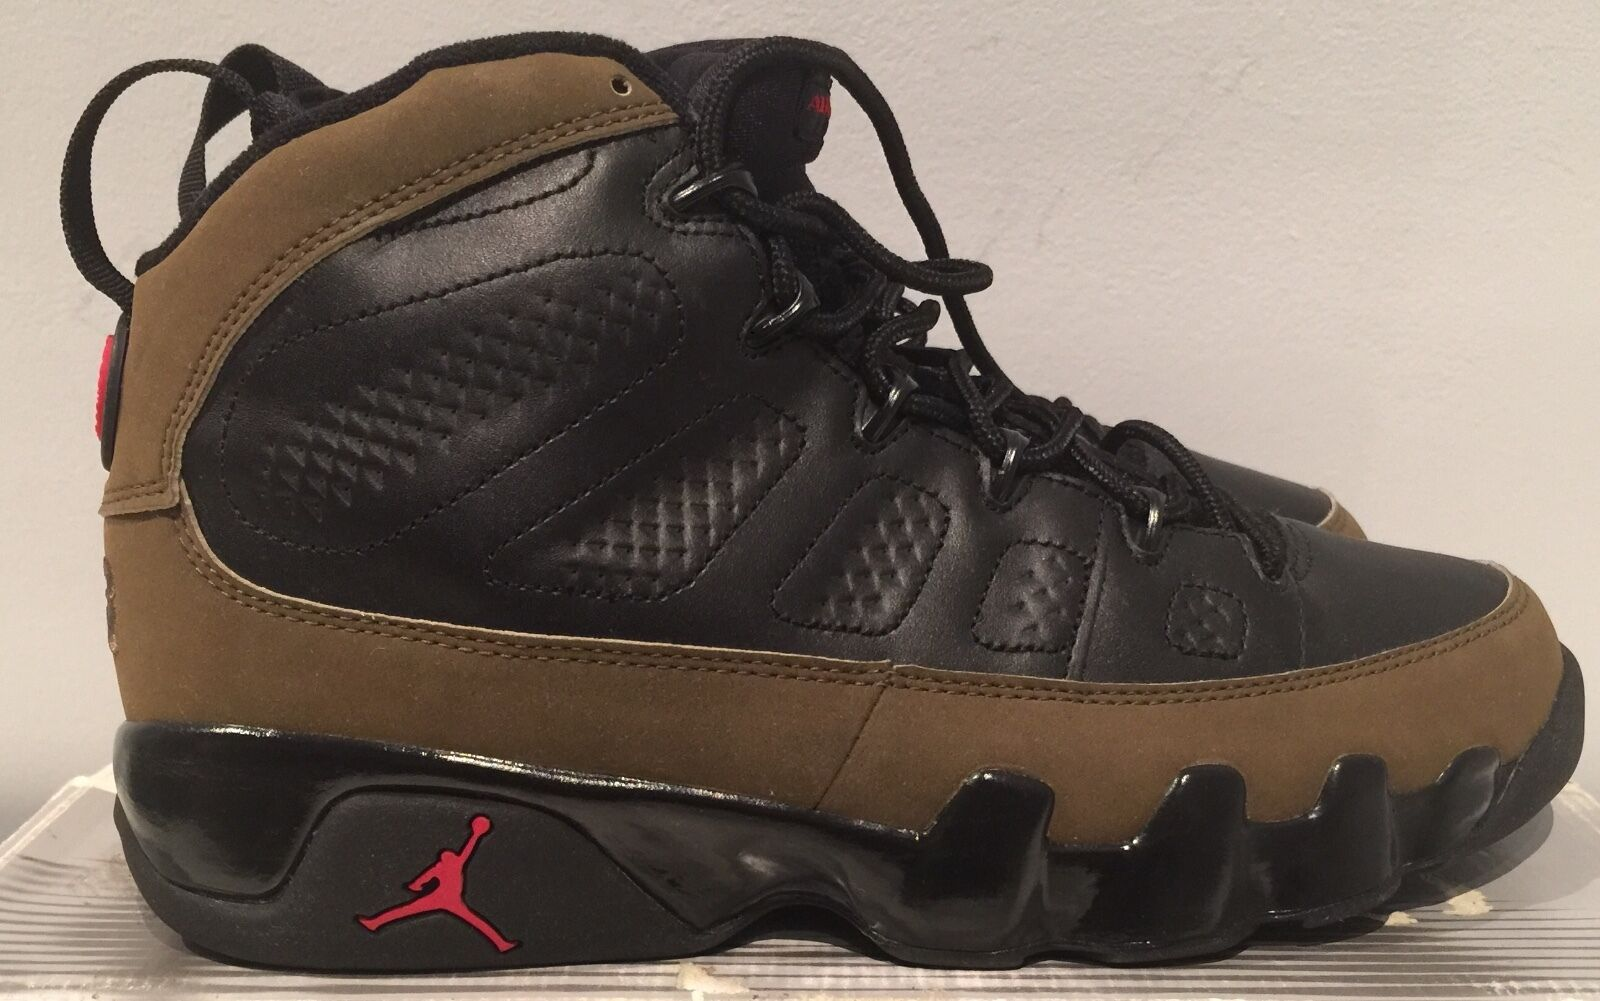 Authentic Nike Air Jordan 9 IX Retro 2018 release olive size 10 deadstock rare Seasonal price cuts, discount benefits